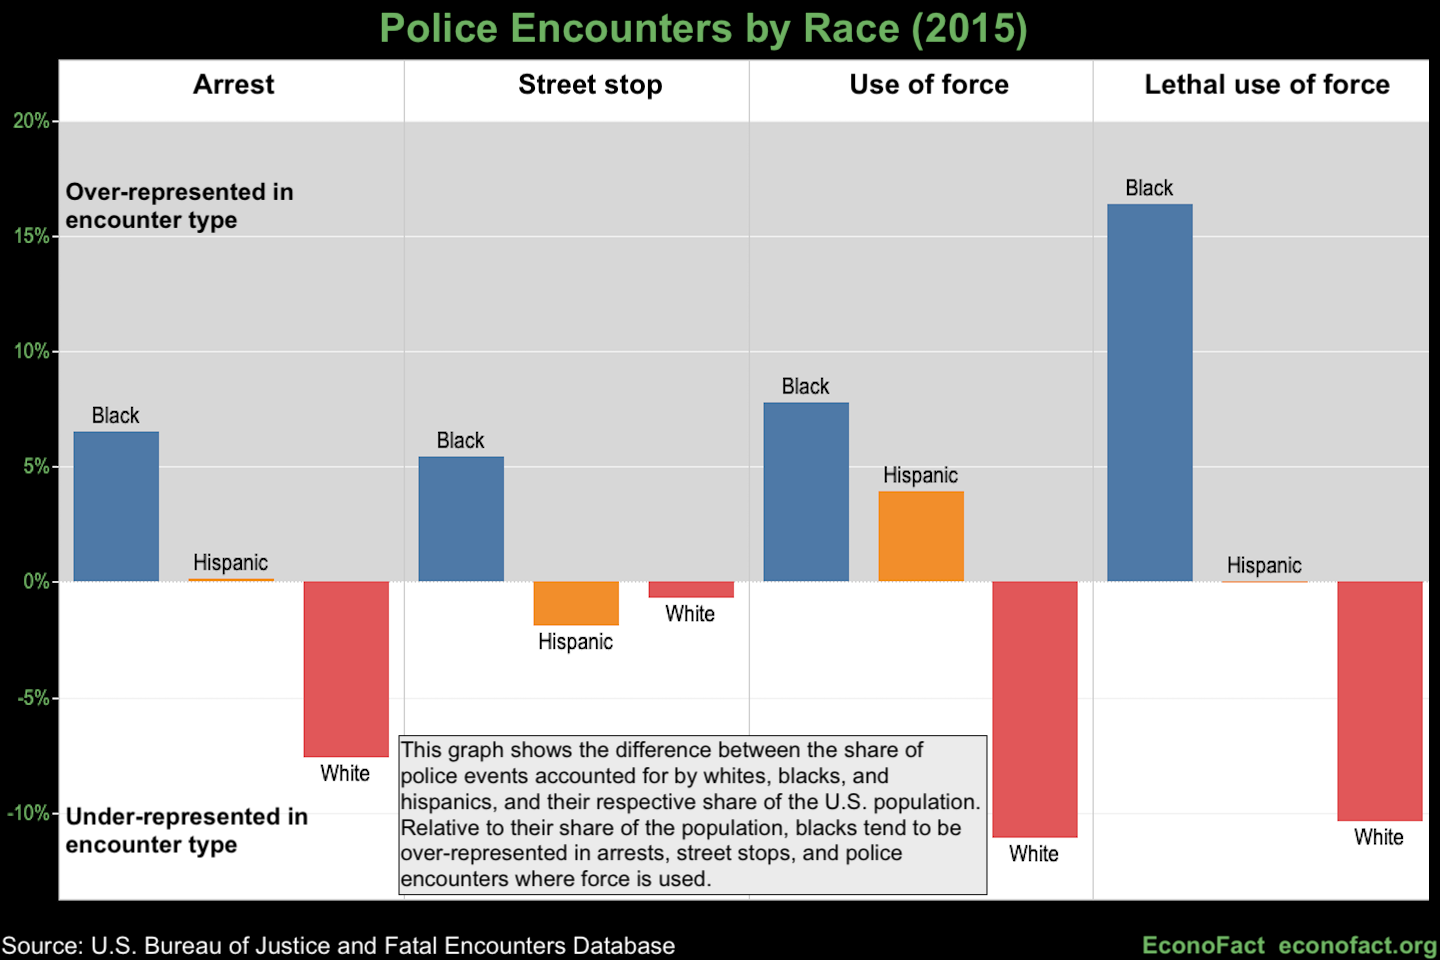 Economics Research on Racial Disparities in Policing